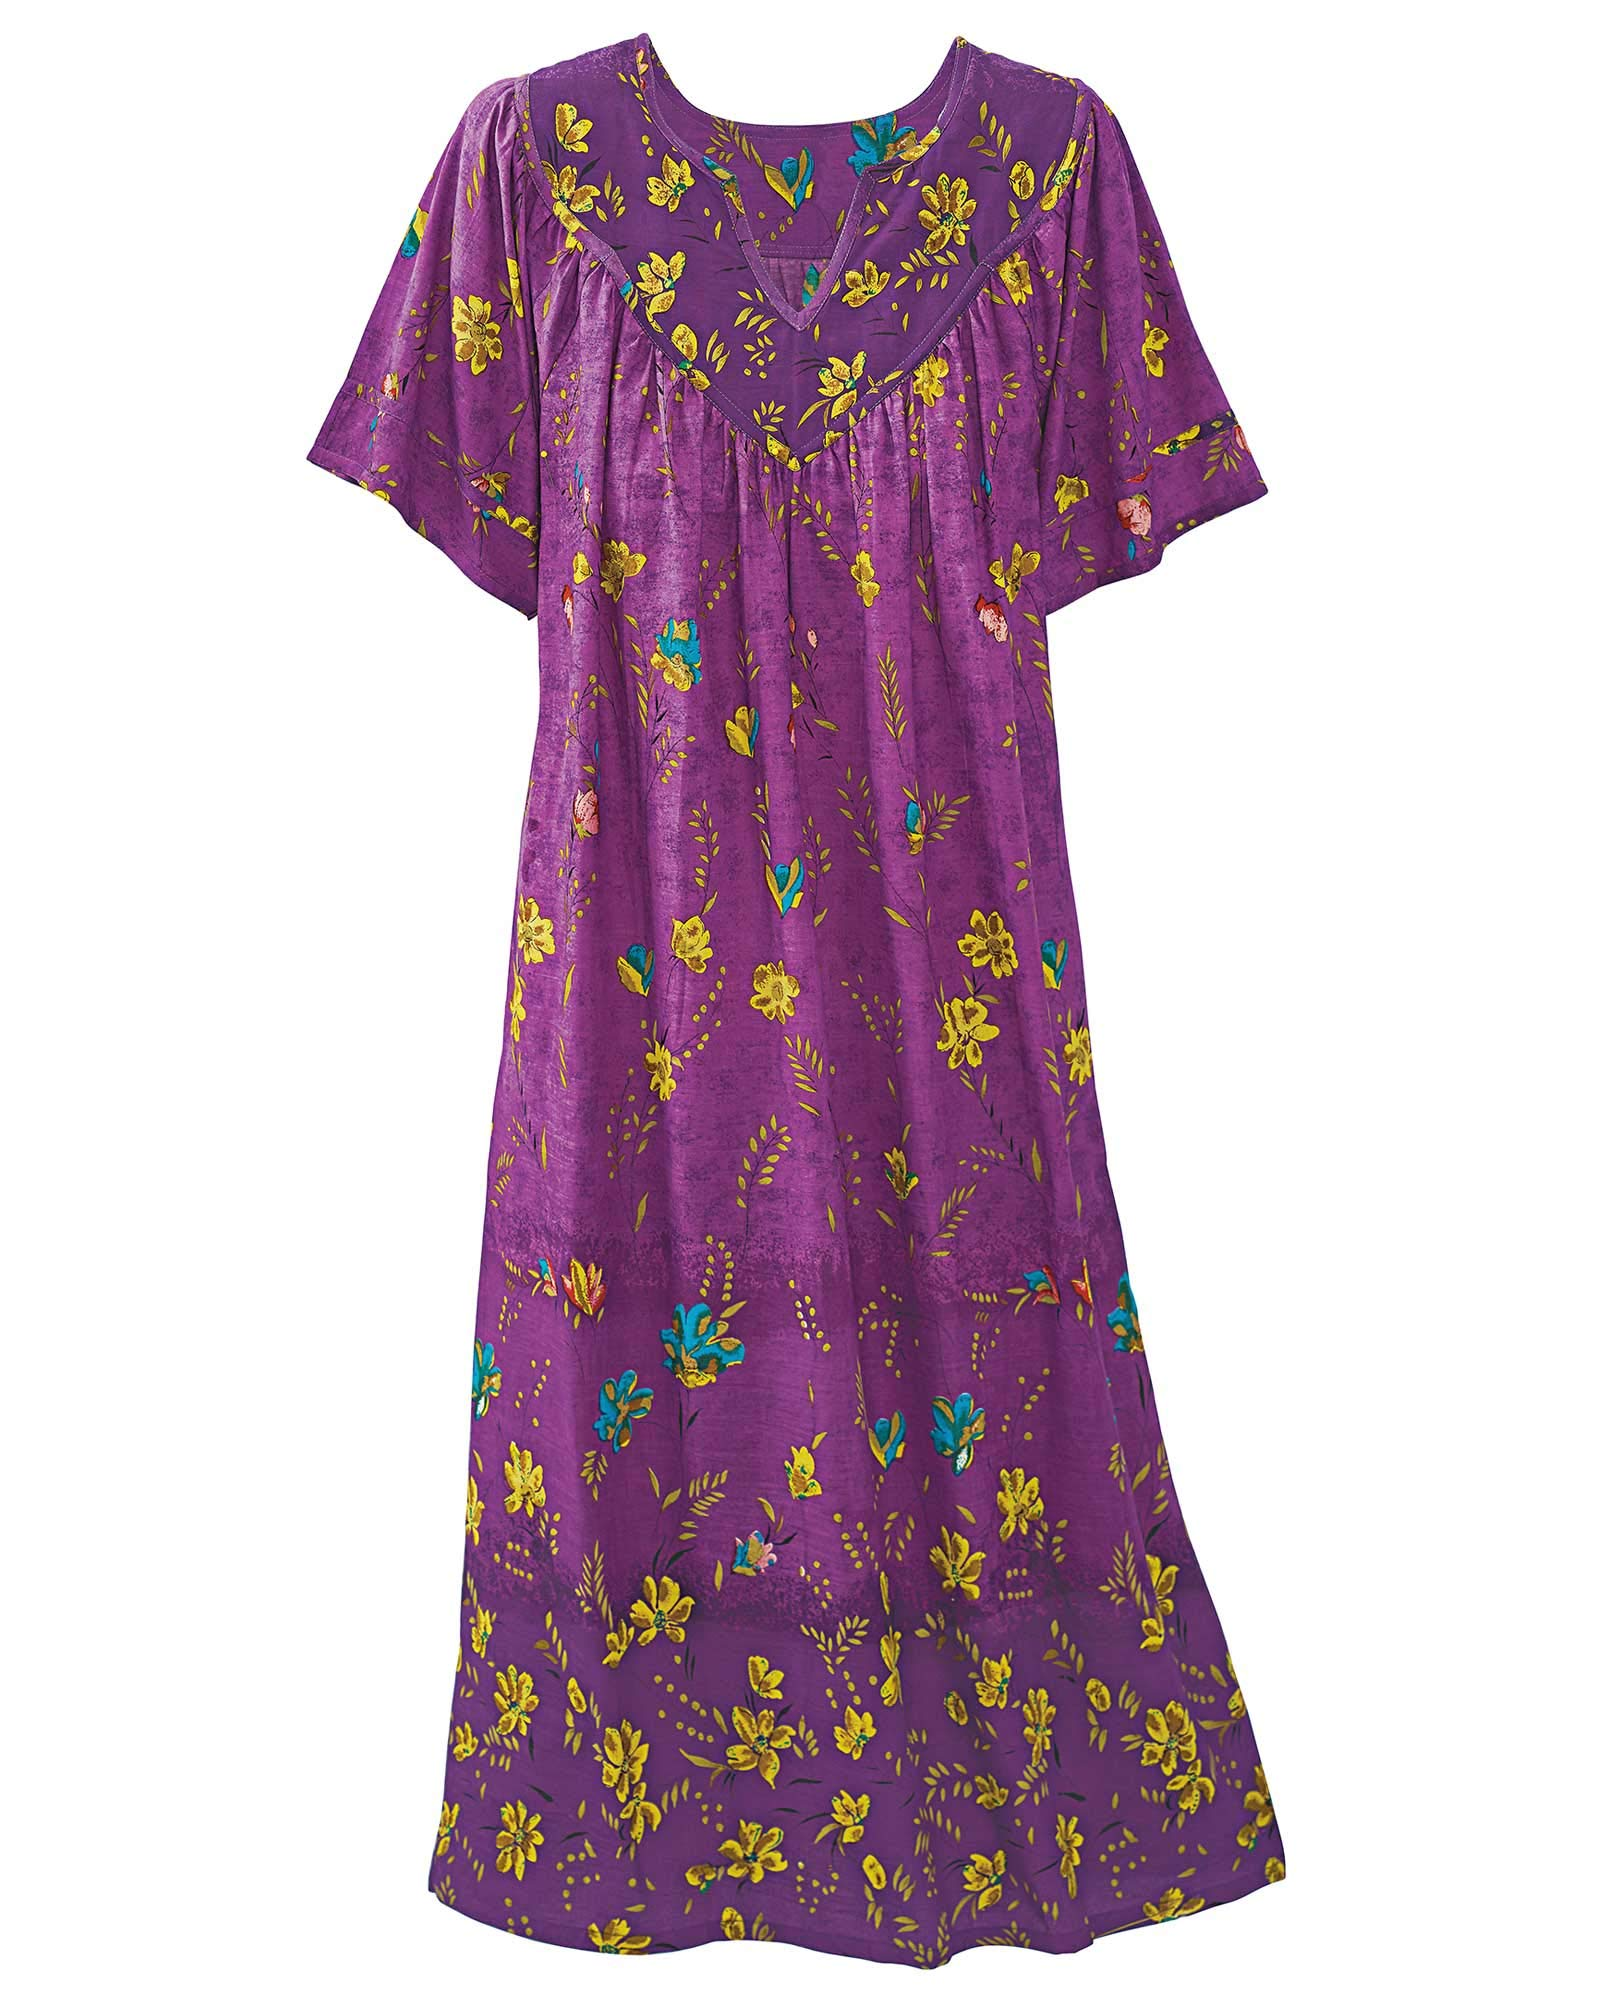 Available at Amazon: National Ombre Floral Lounge Dress